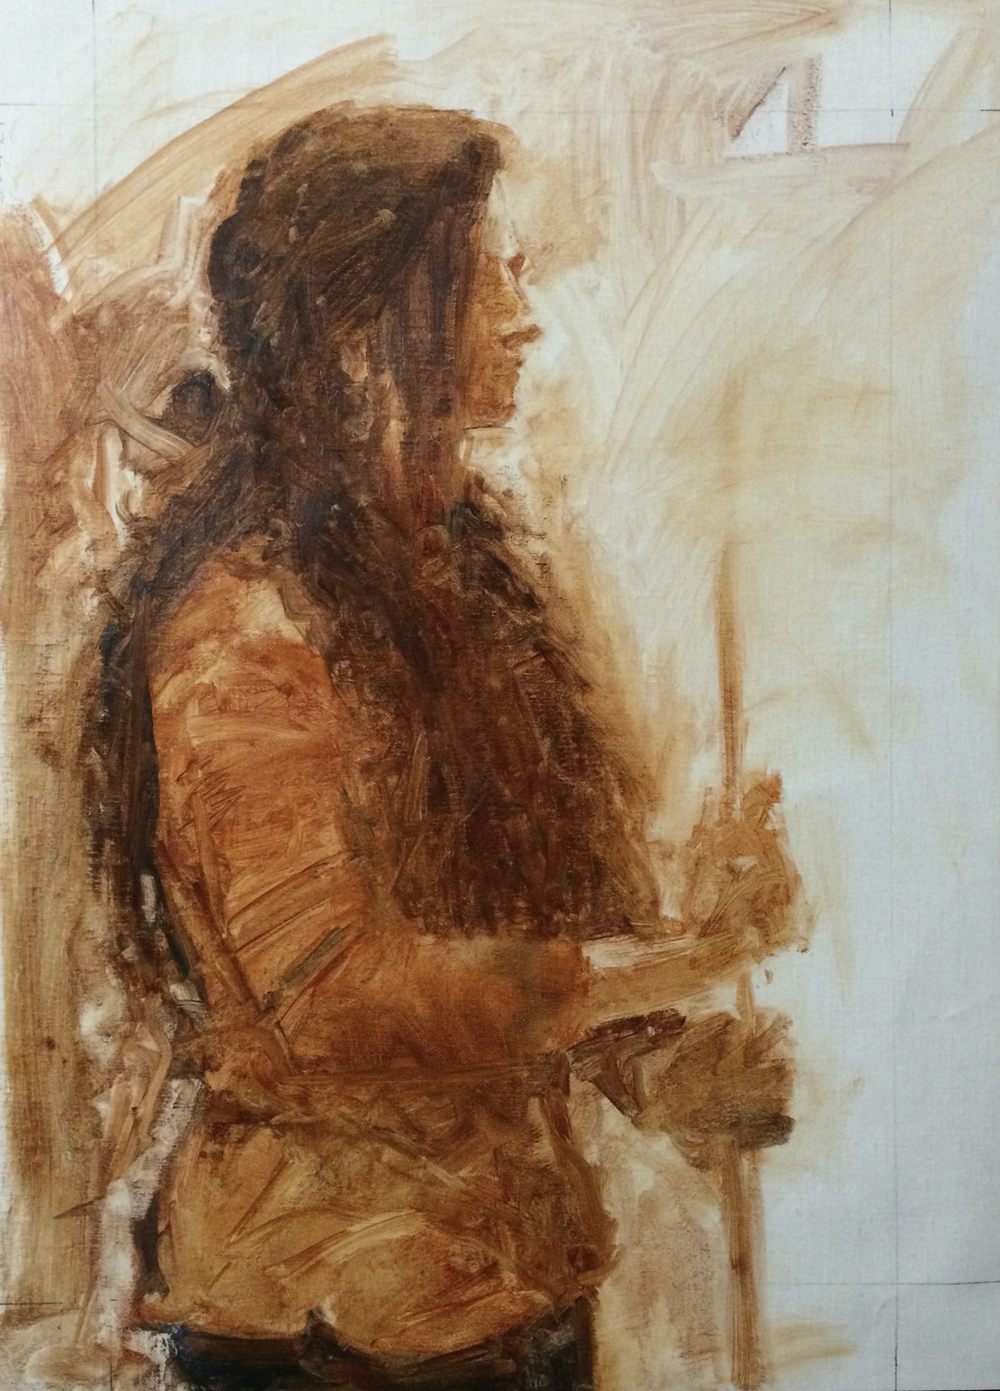 Soha Standing oil sketch on linen roughly 20x24